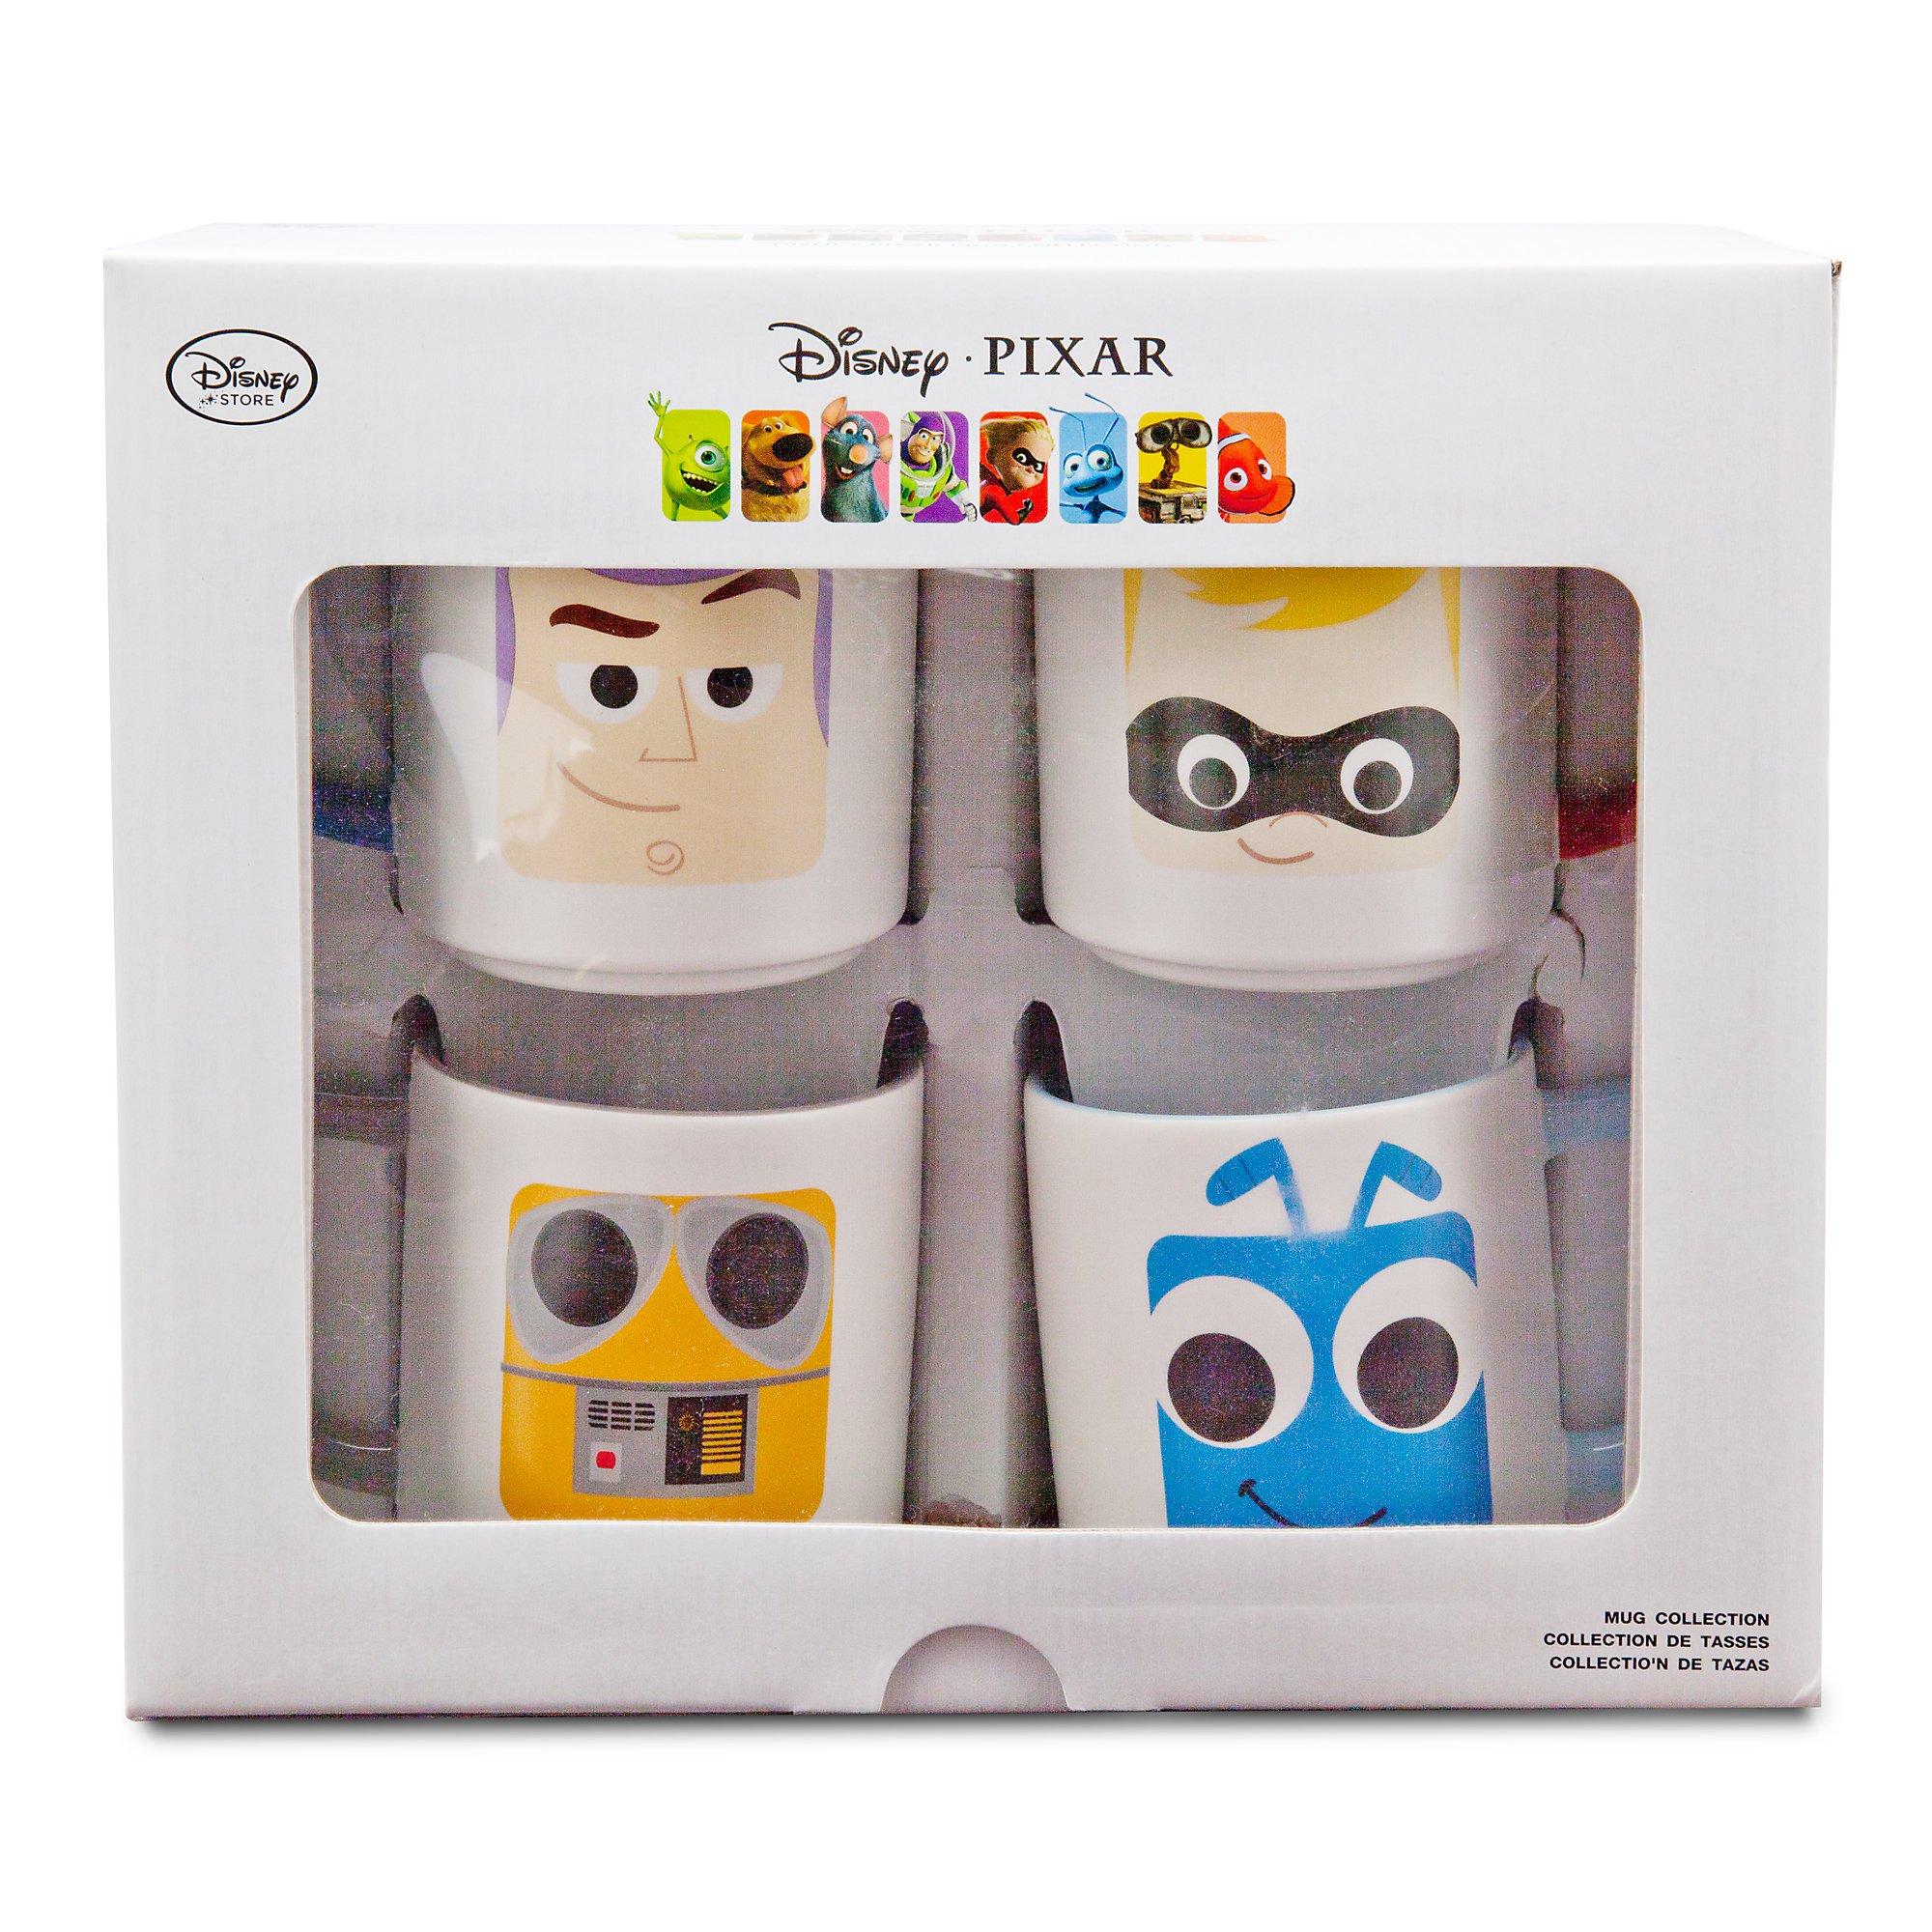 D23 Expo Disney:Pixar Products - Mug Set 2 Packaging